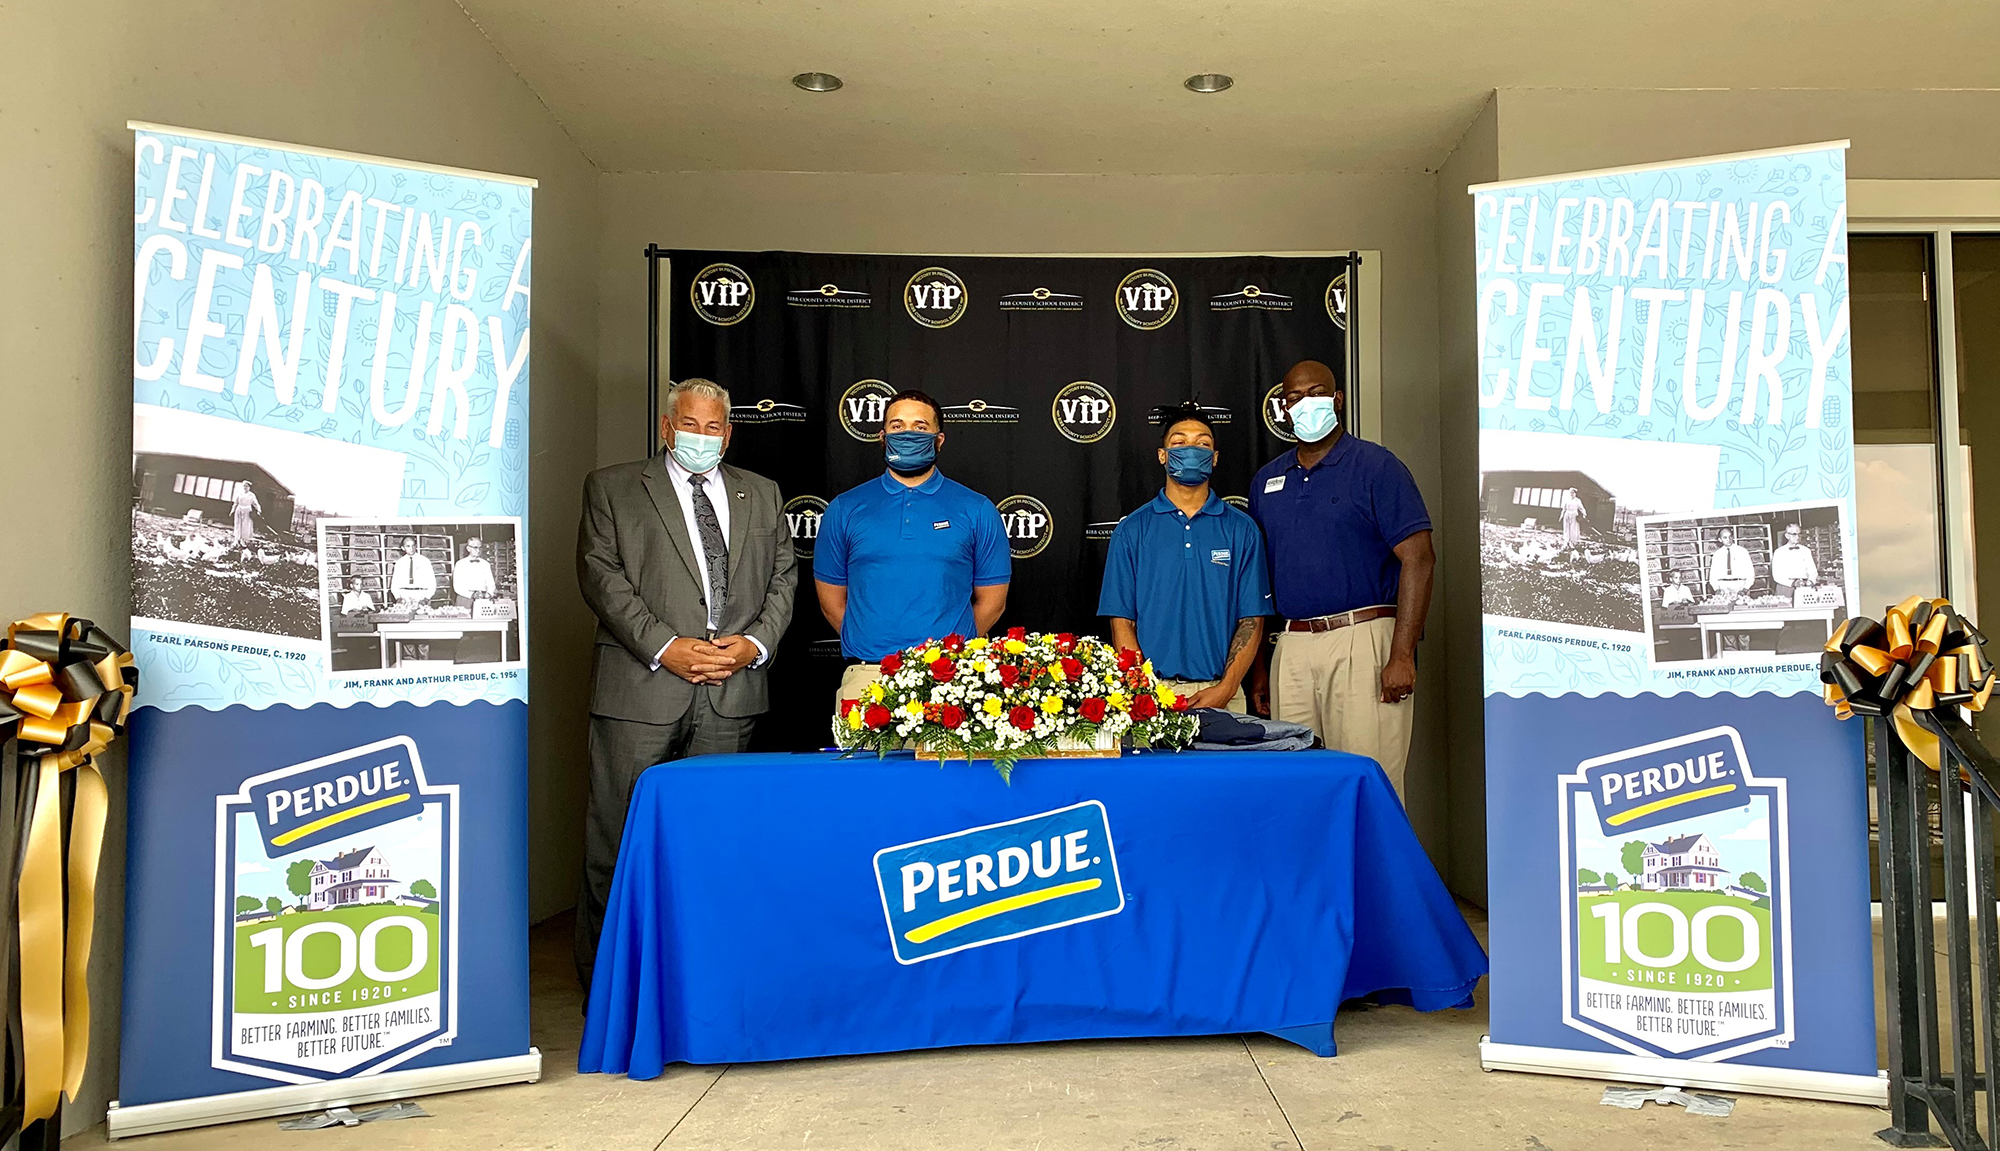 HCCA Students at Perdue Farms Signing Day